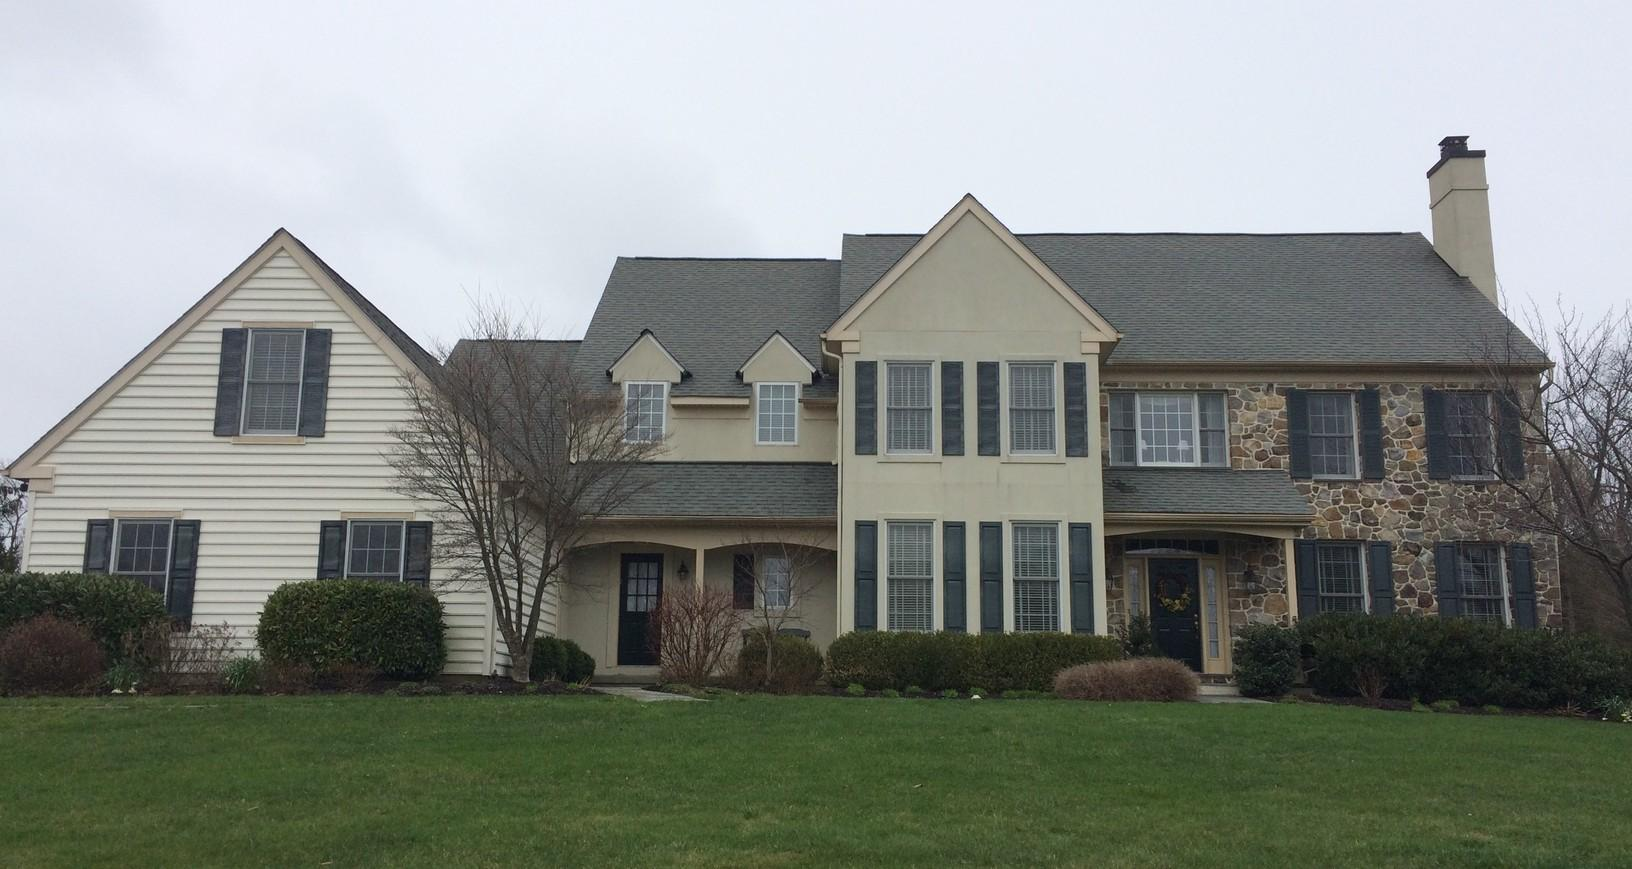 Stucco Remediation Project with James Hardie Siding in Malvern, PA - Before Photo